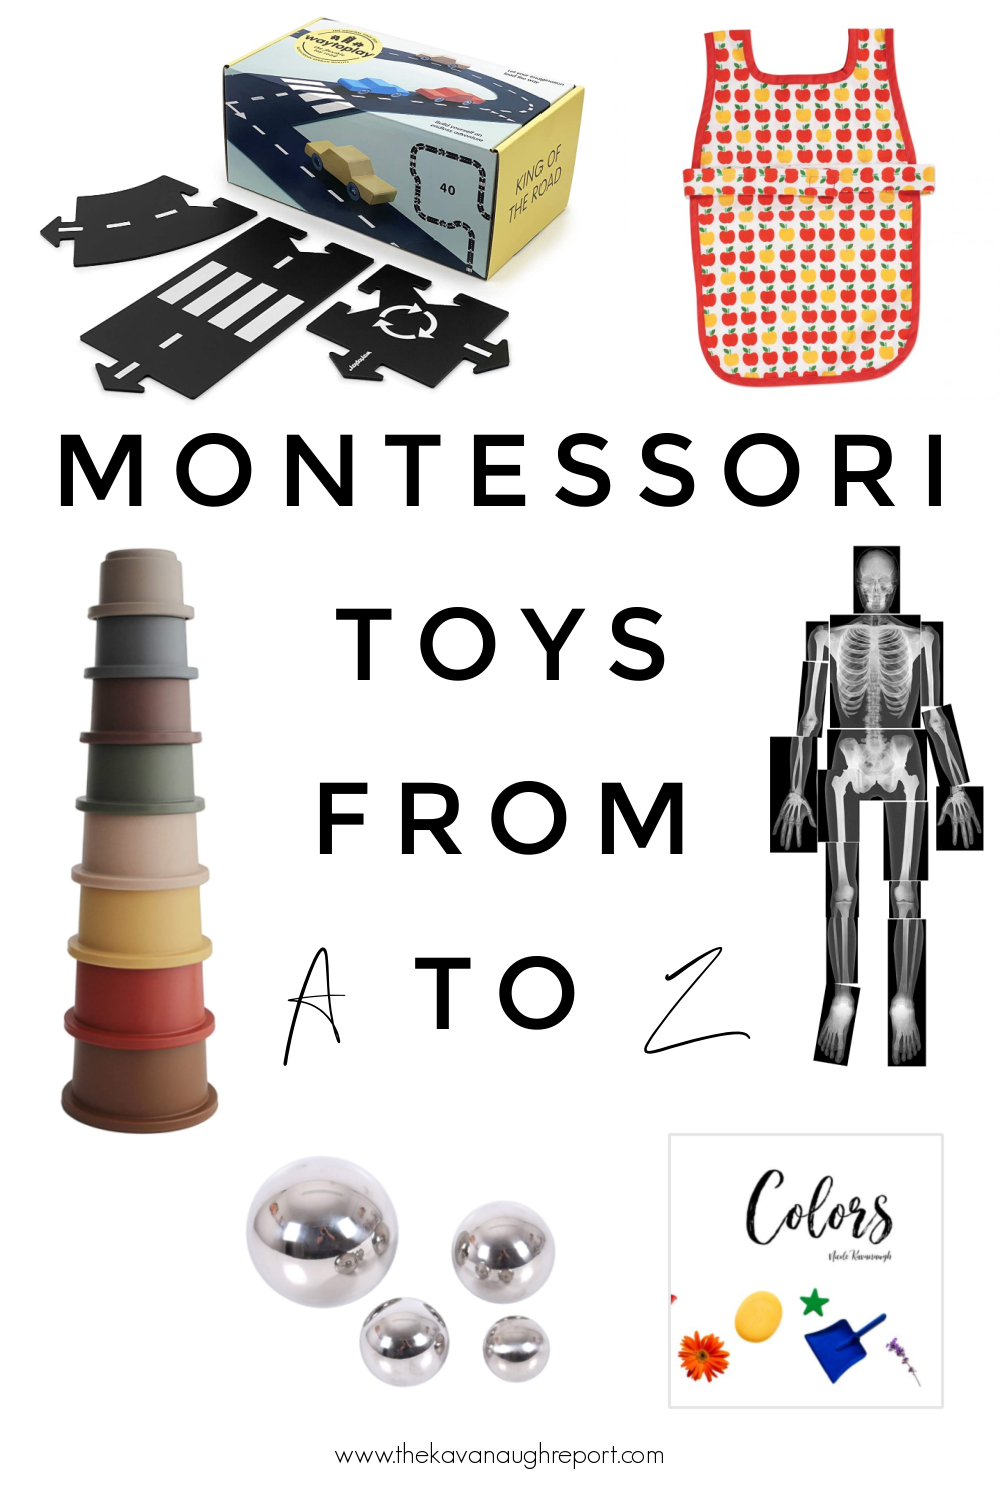 Montessori friendly toys, books, and games from A to Z! This gift list has a little something for every child!